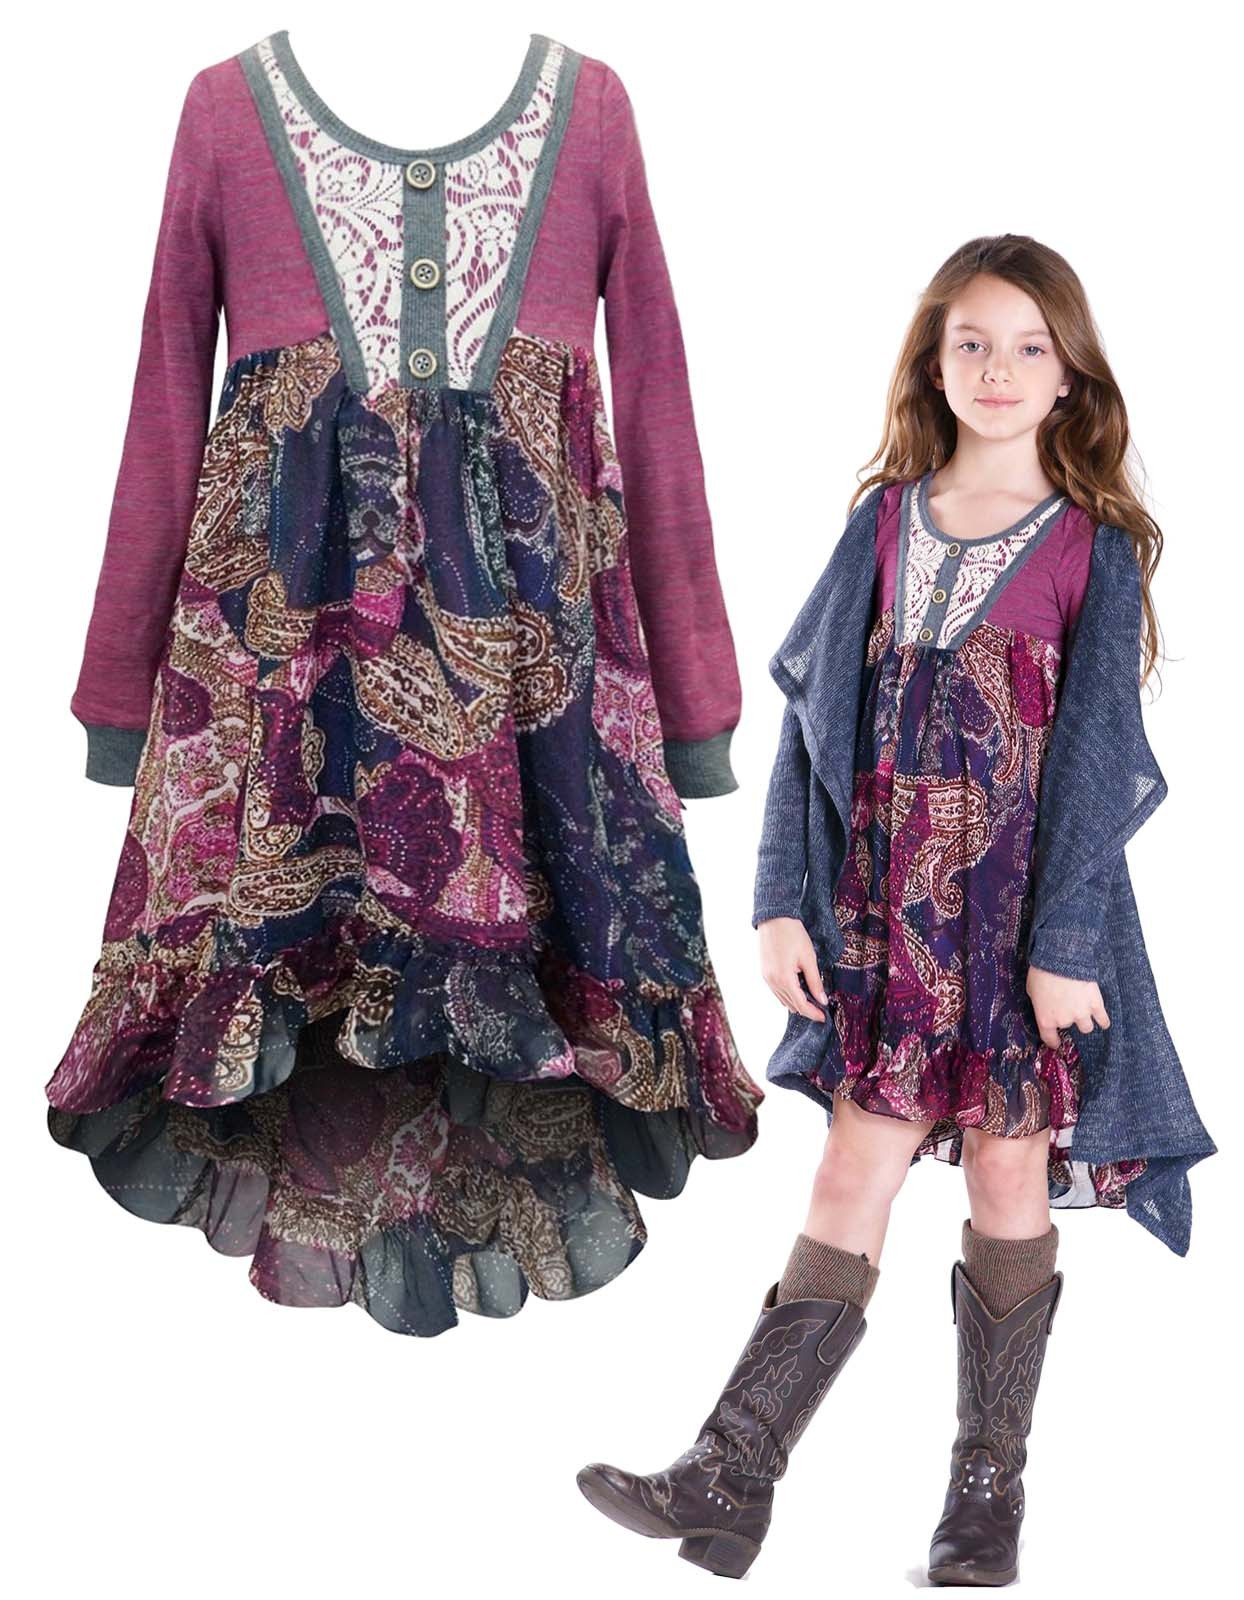 Primary image for Little Girls 2T-6X Berry Long-Sleeve Knit to Printed Chiffon High-Low Dress